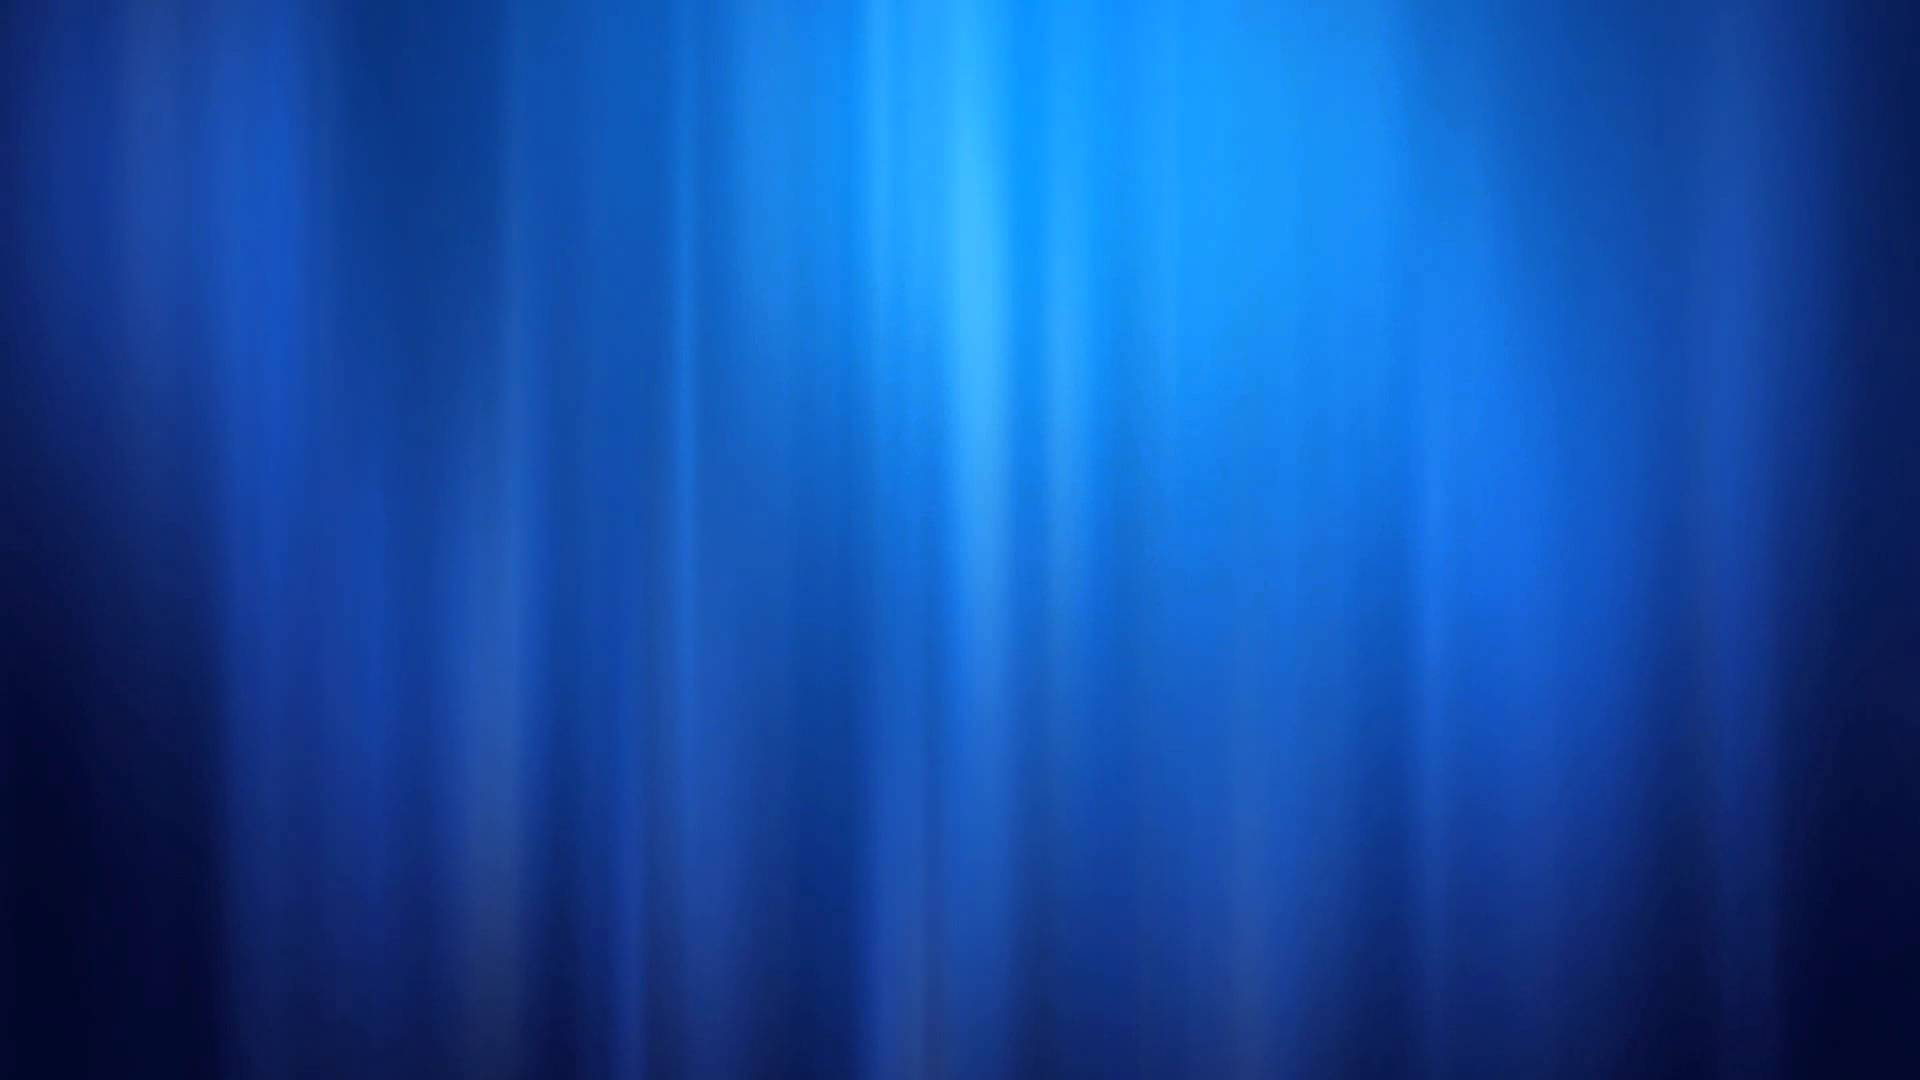 blue motion background hd 1080p! - YouTube